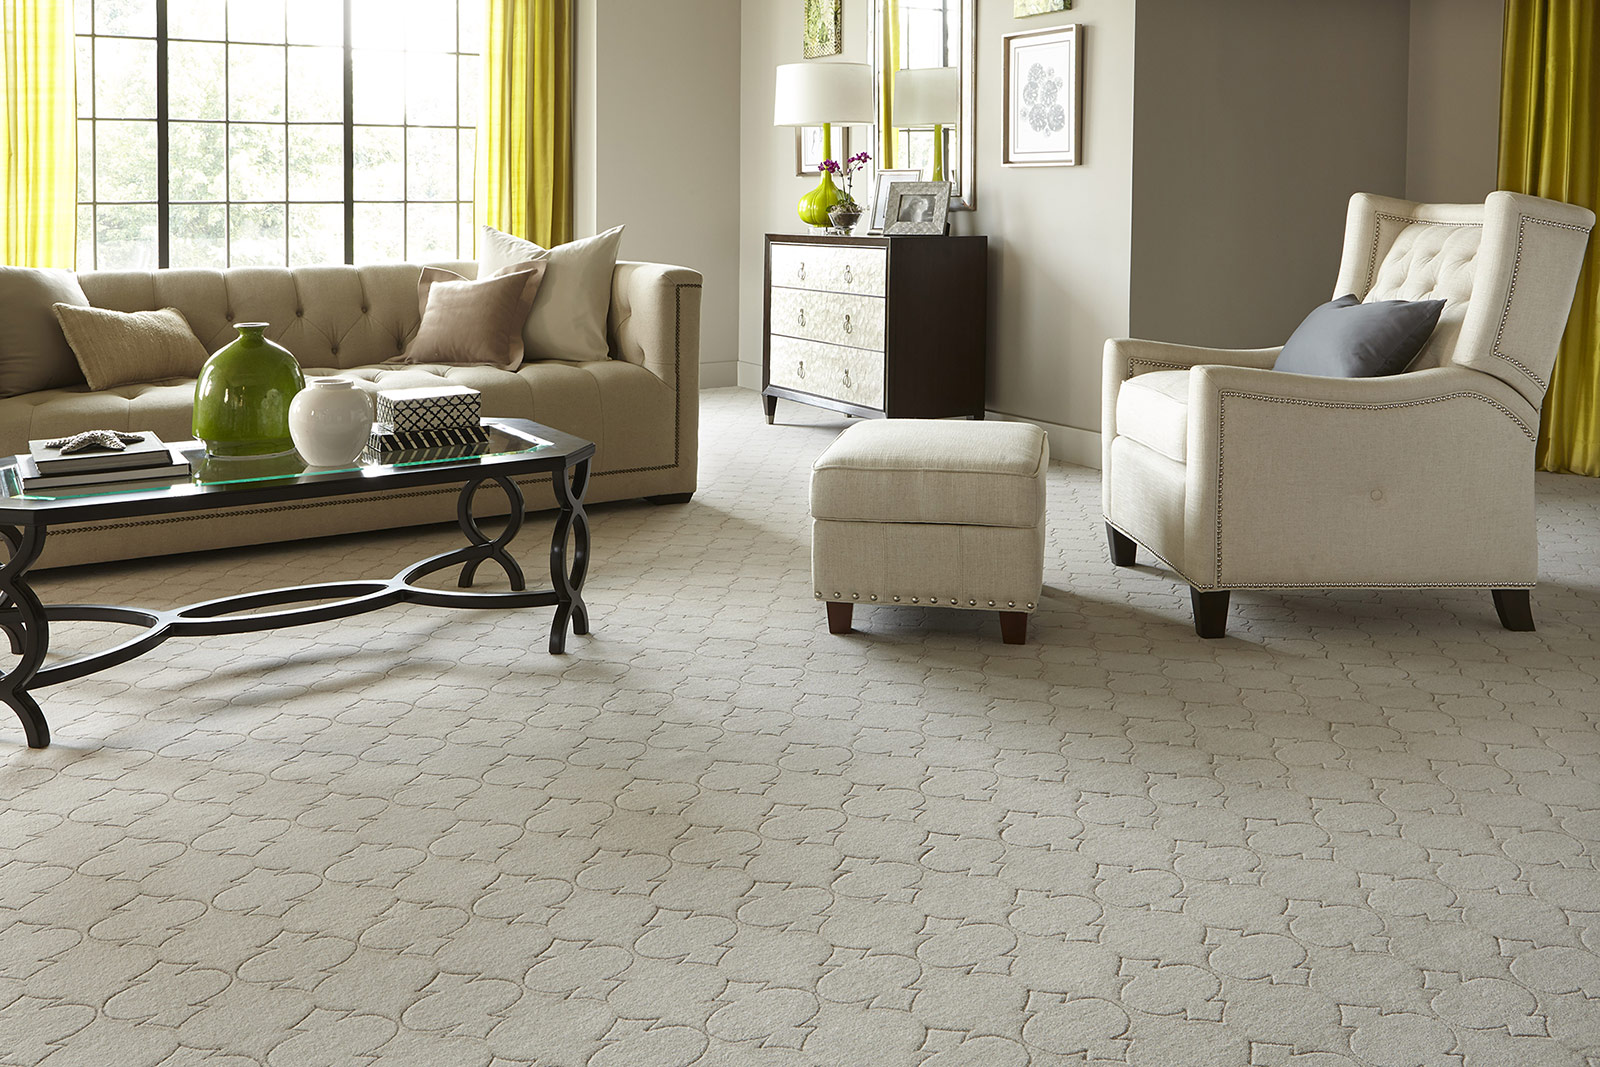 Small apartment ideas - Wall-to-wall carpet